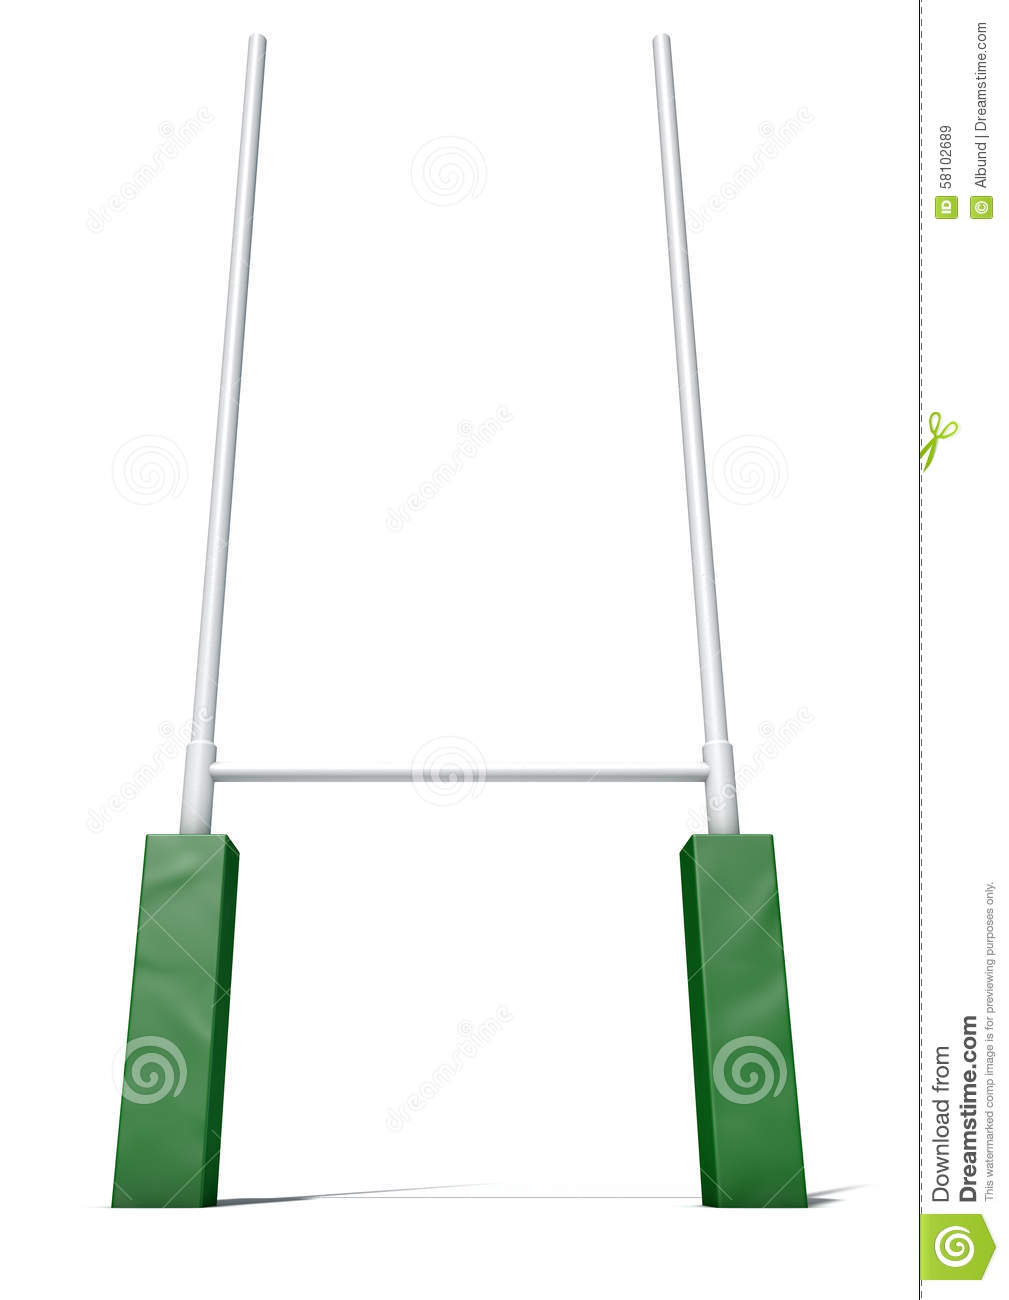 Rugby Goal Posts Clipart.